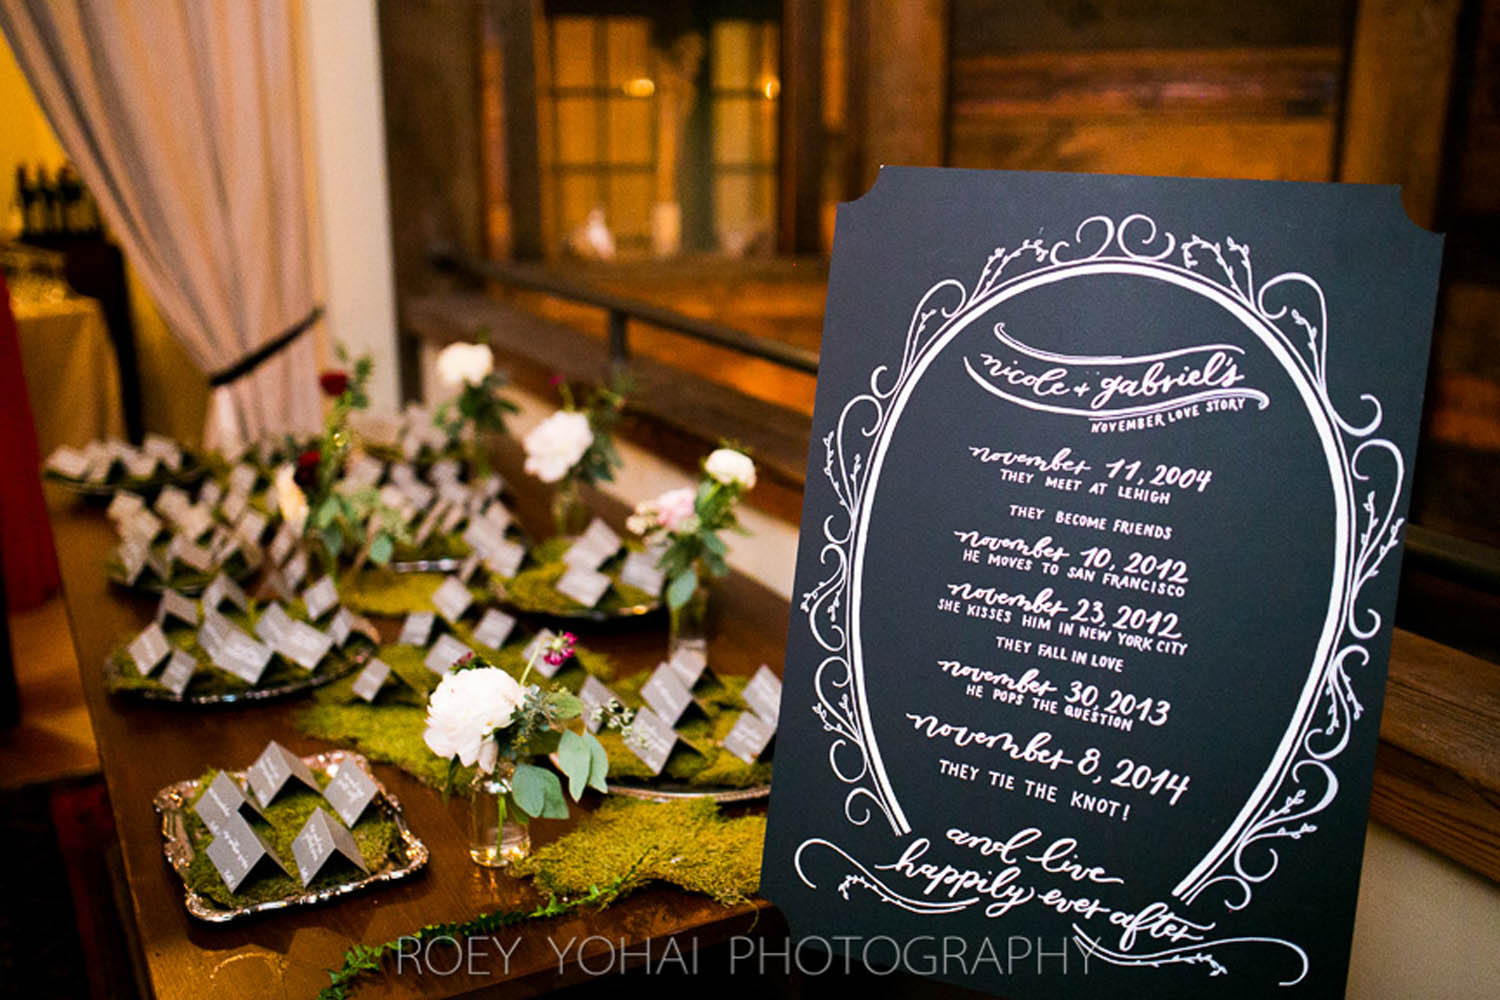 details-wedding-planner-litchfield.jpg